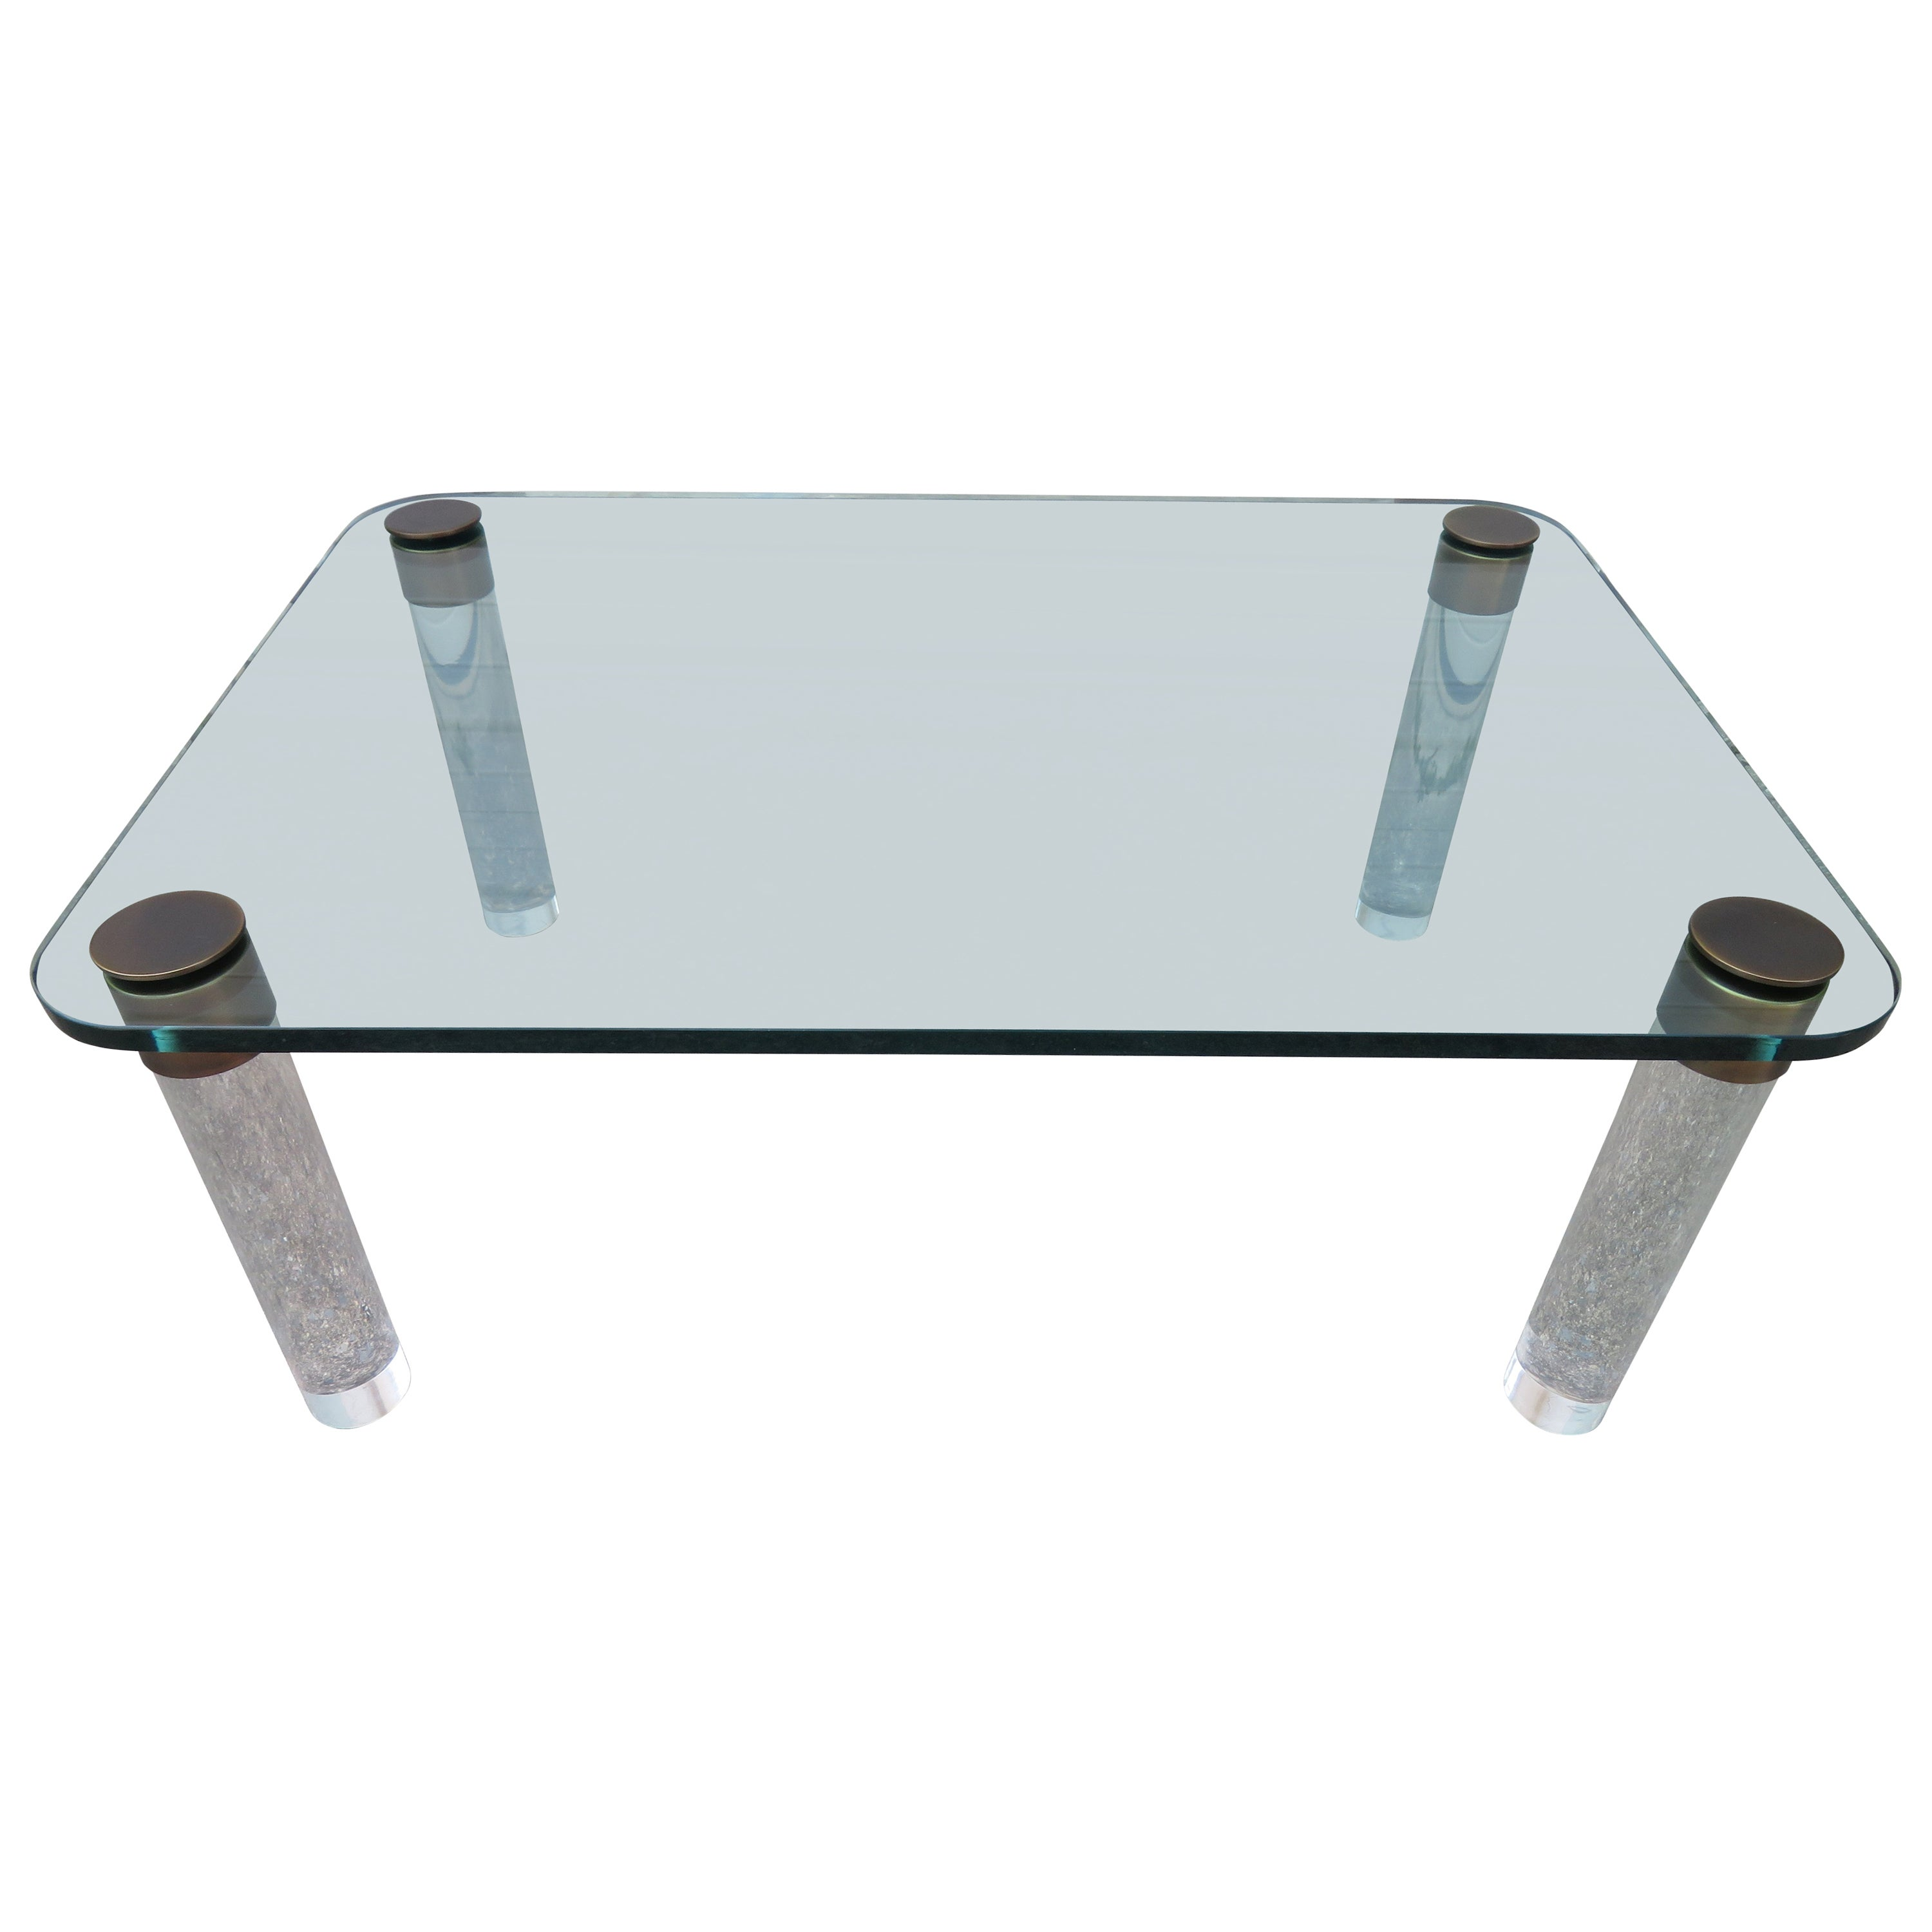 Stunning Lucite Bronze and Glass Cocktail Table, Leon Rosen for Pace